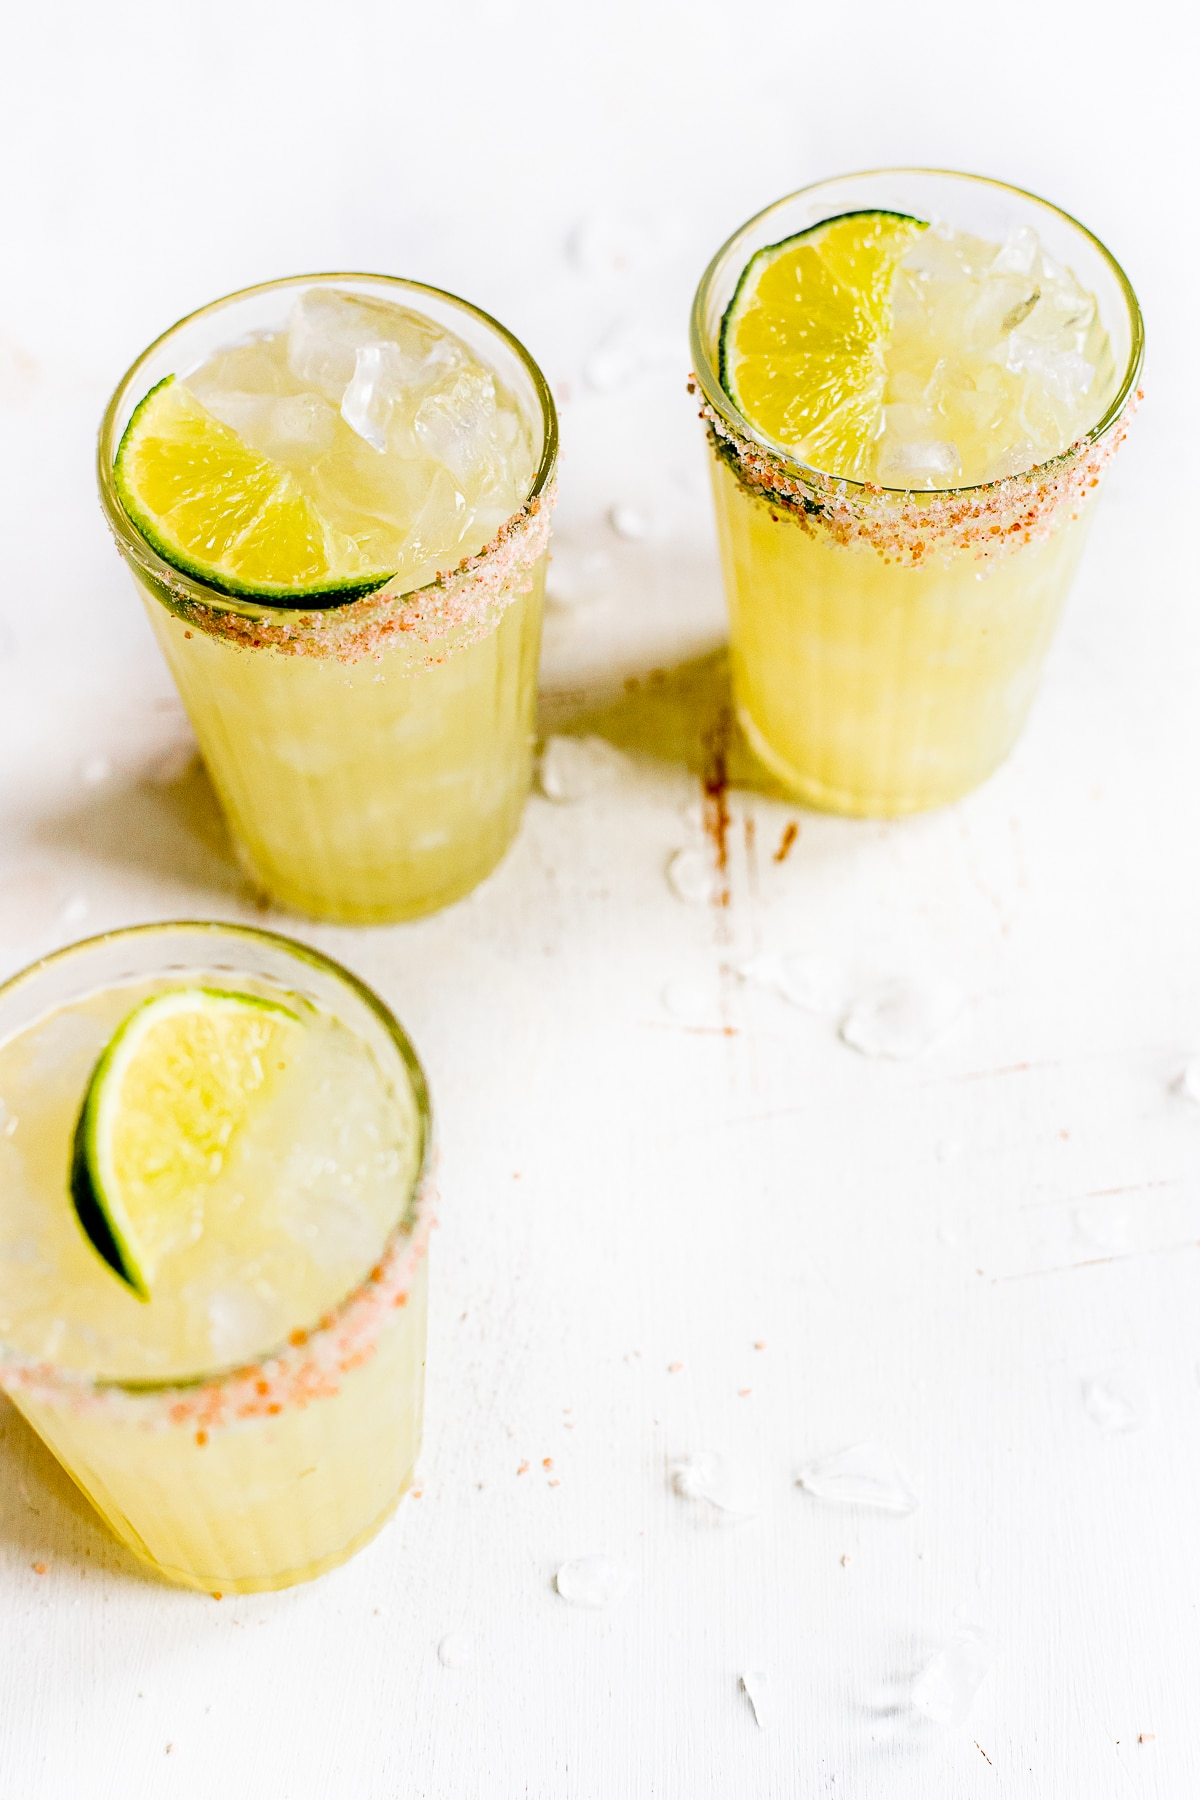 HOMEMADE SOUR MIX AND CLASSIC MARGARITAS